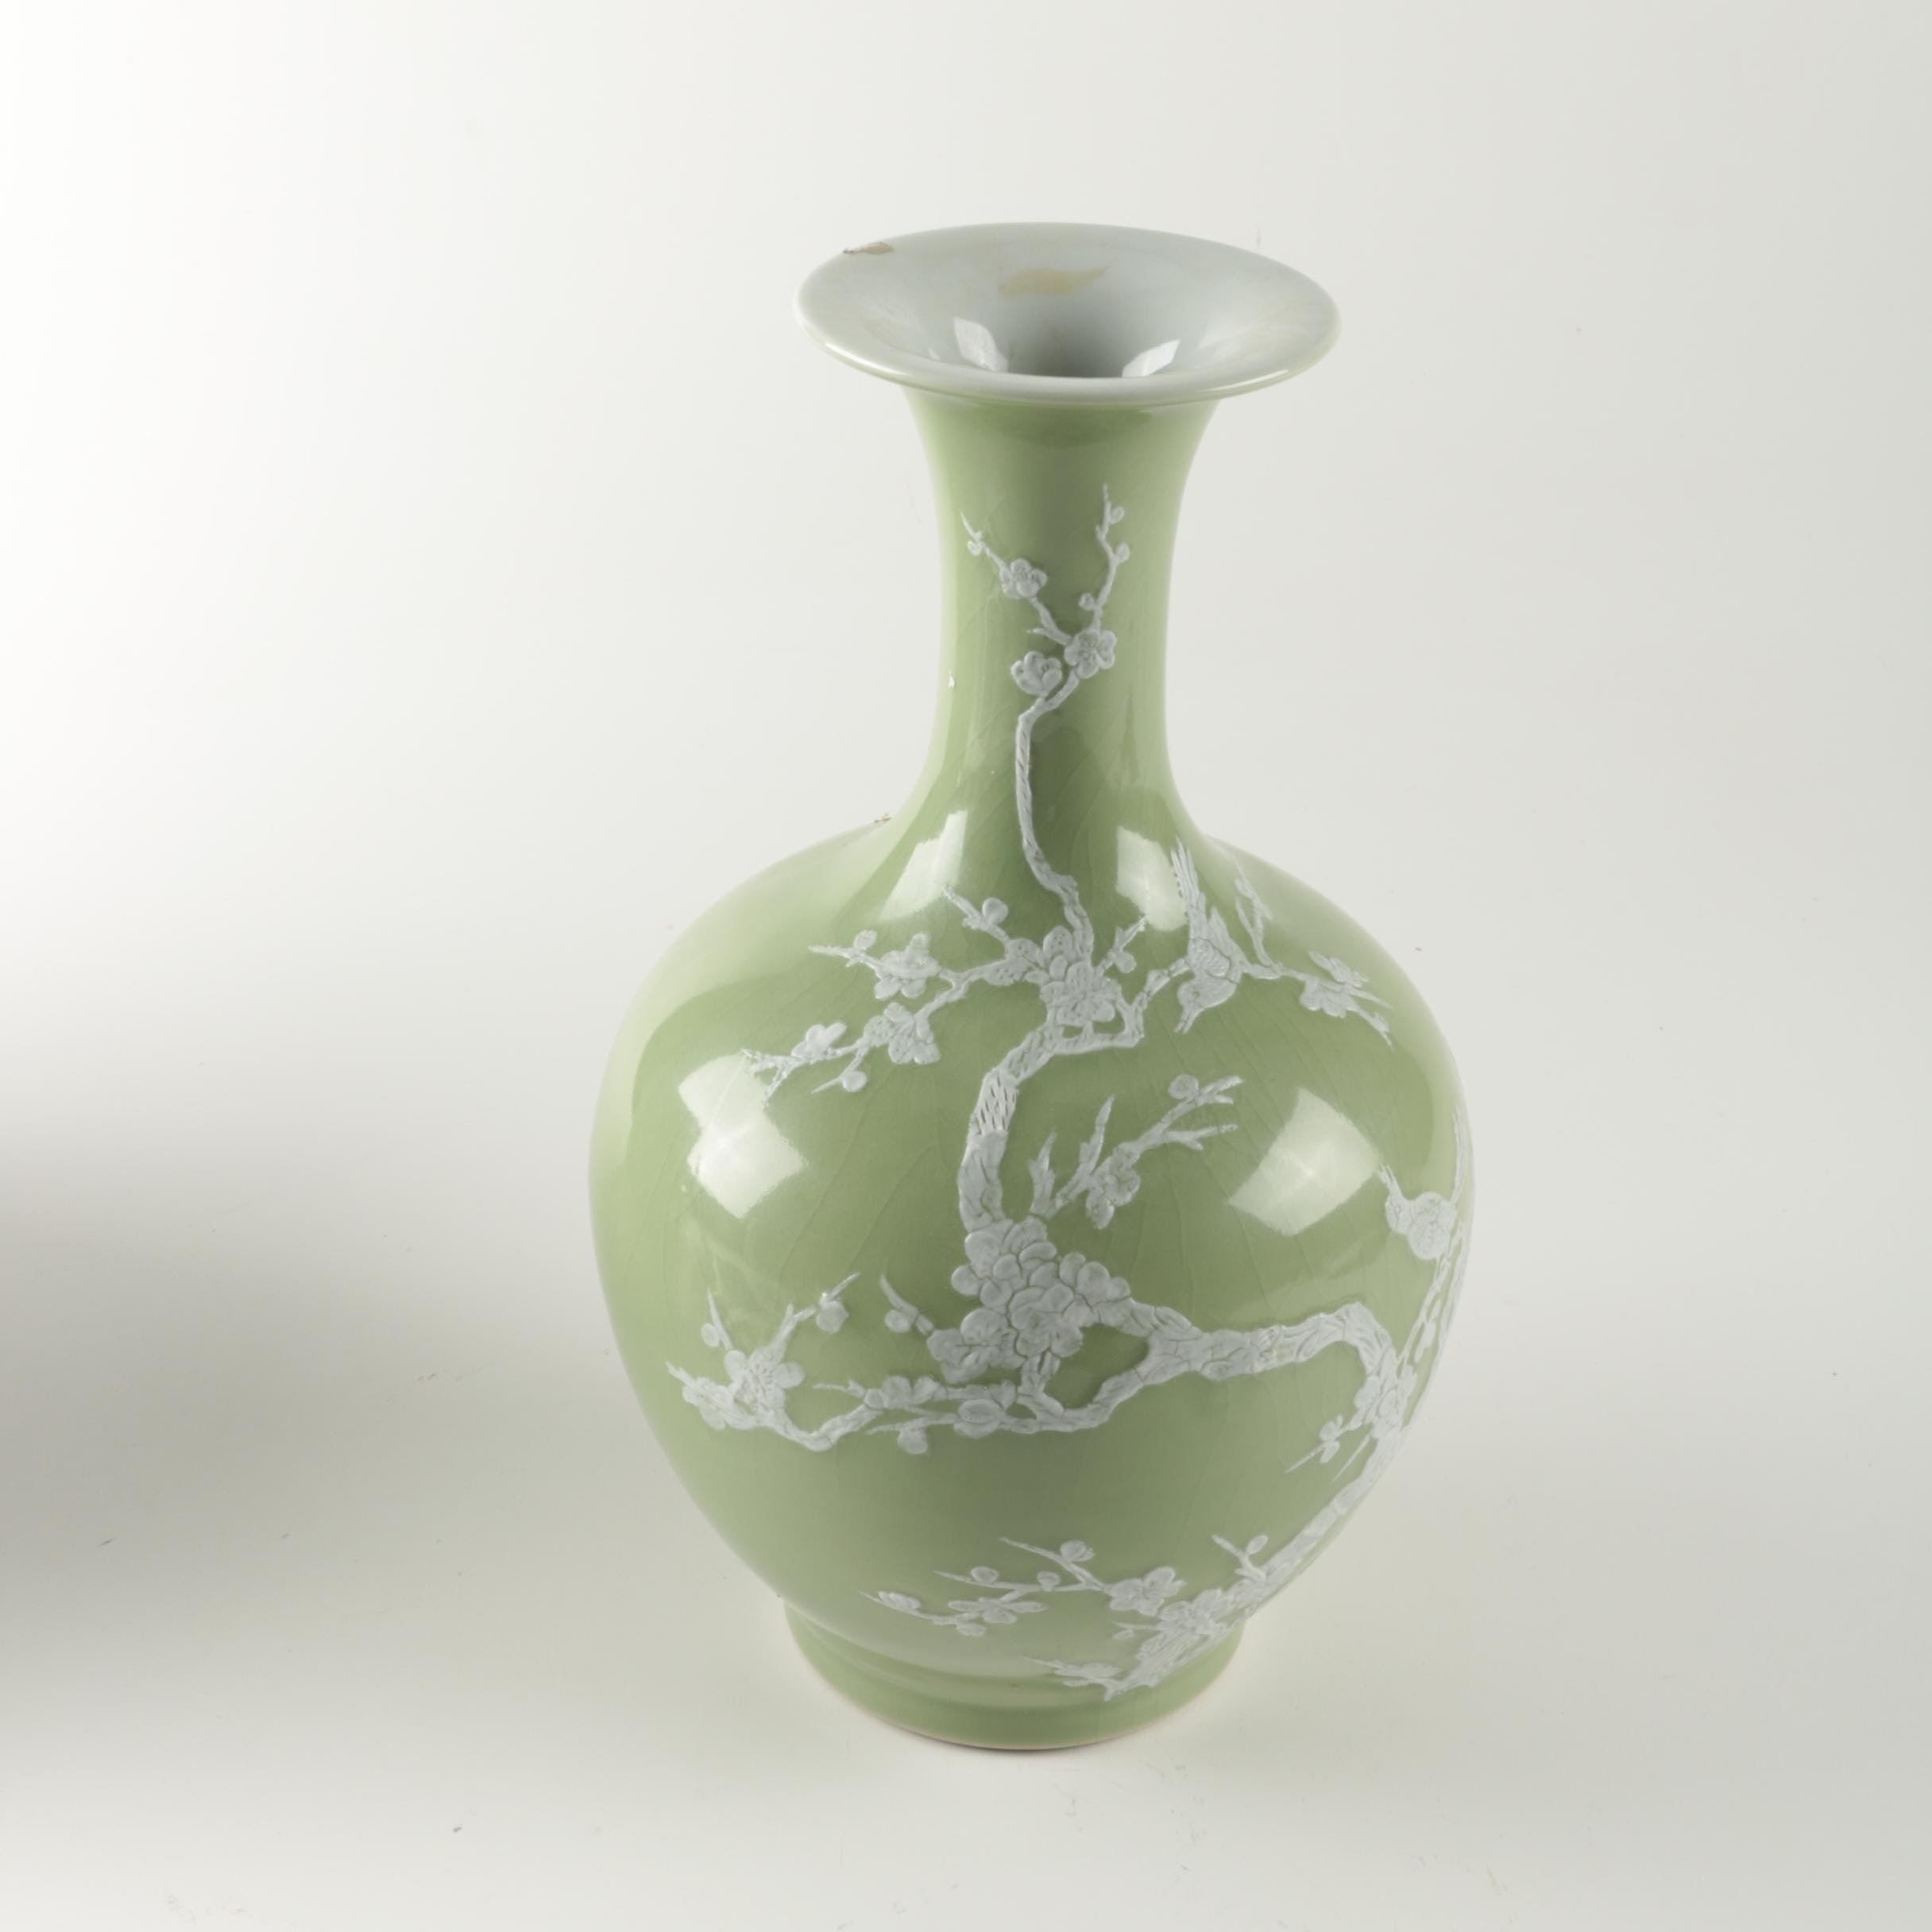 Chinese Decorative Sage Green and White Cherry Blossom Vase